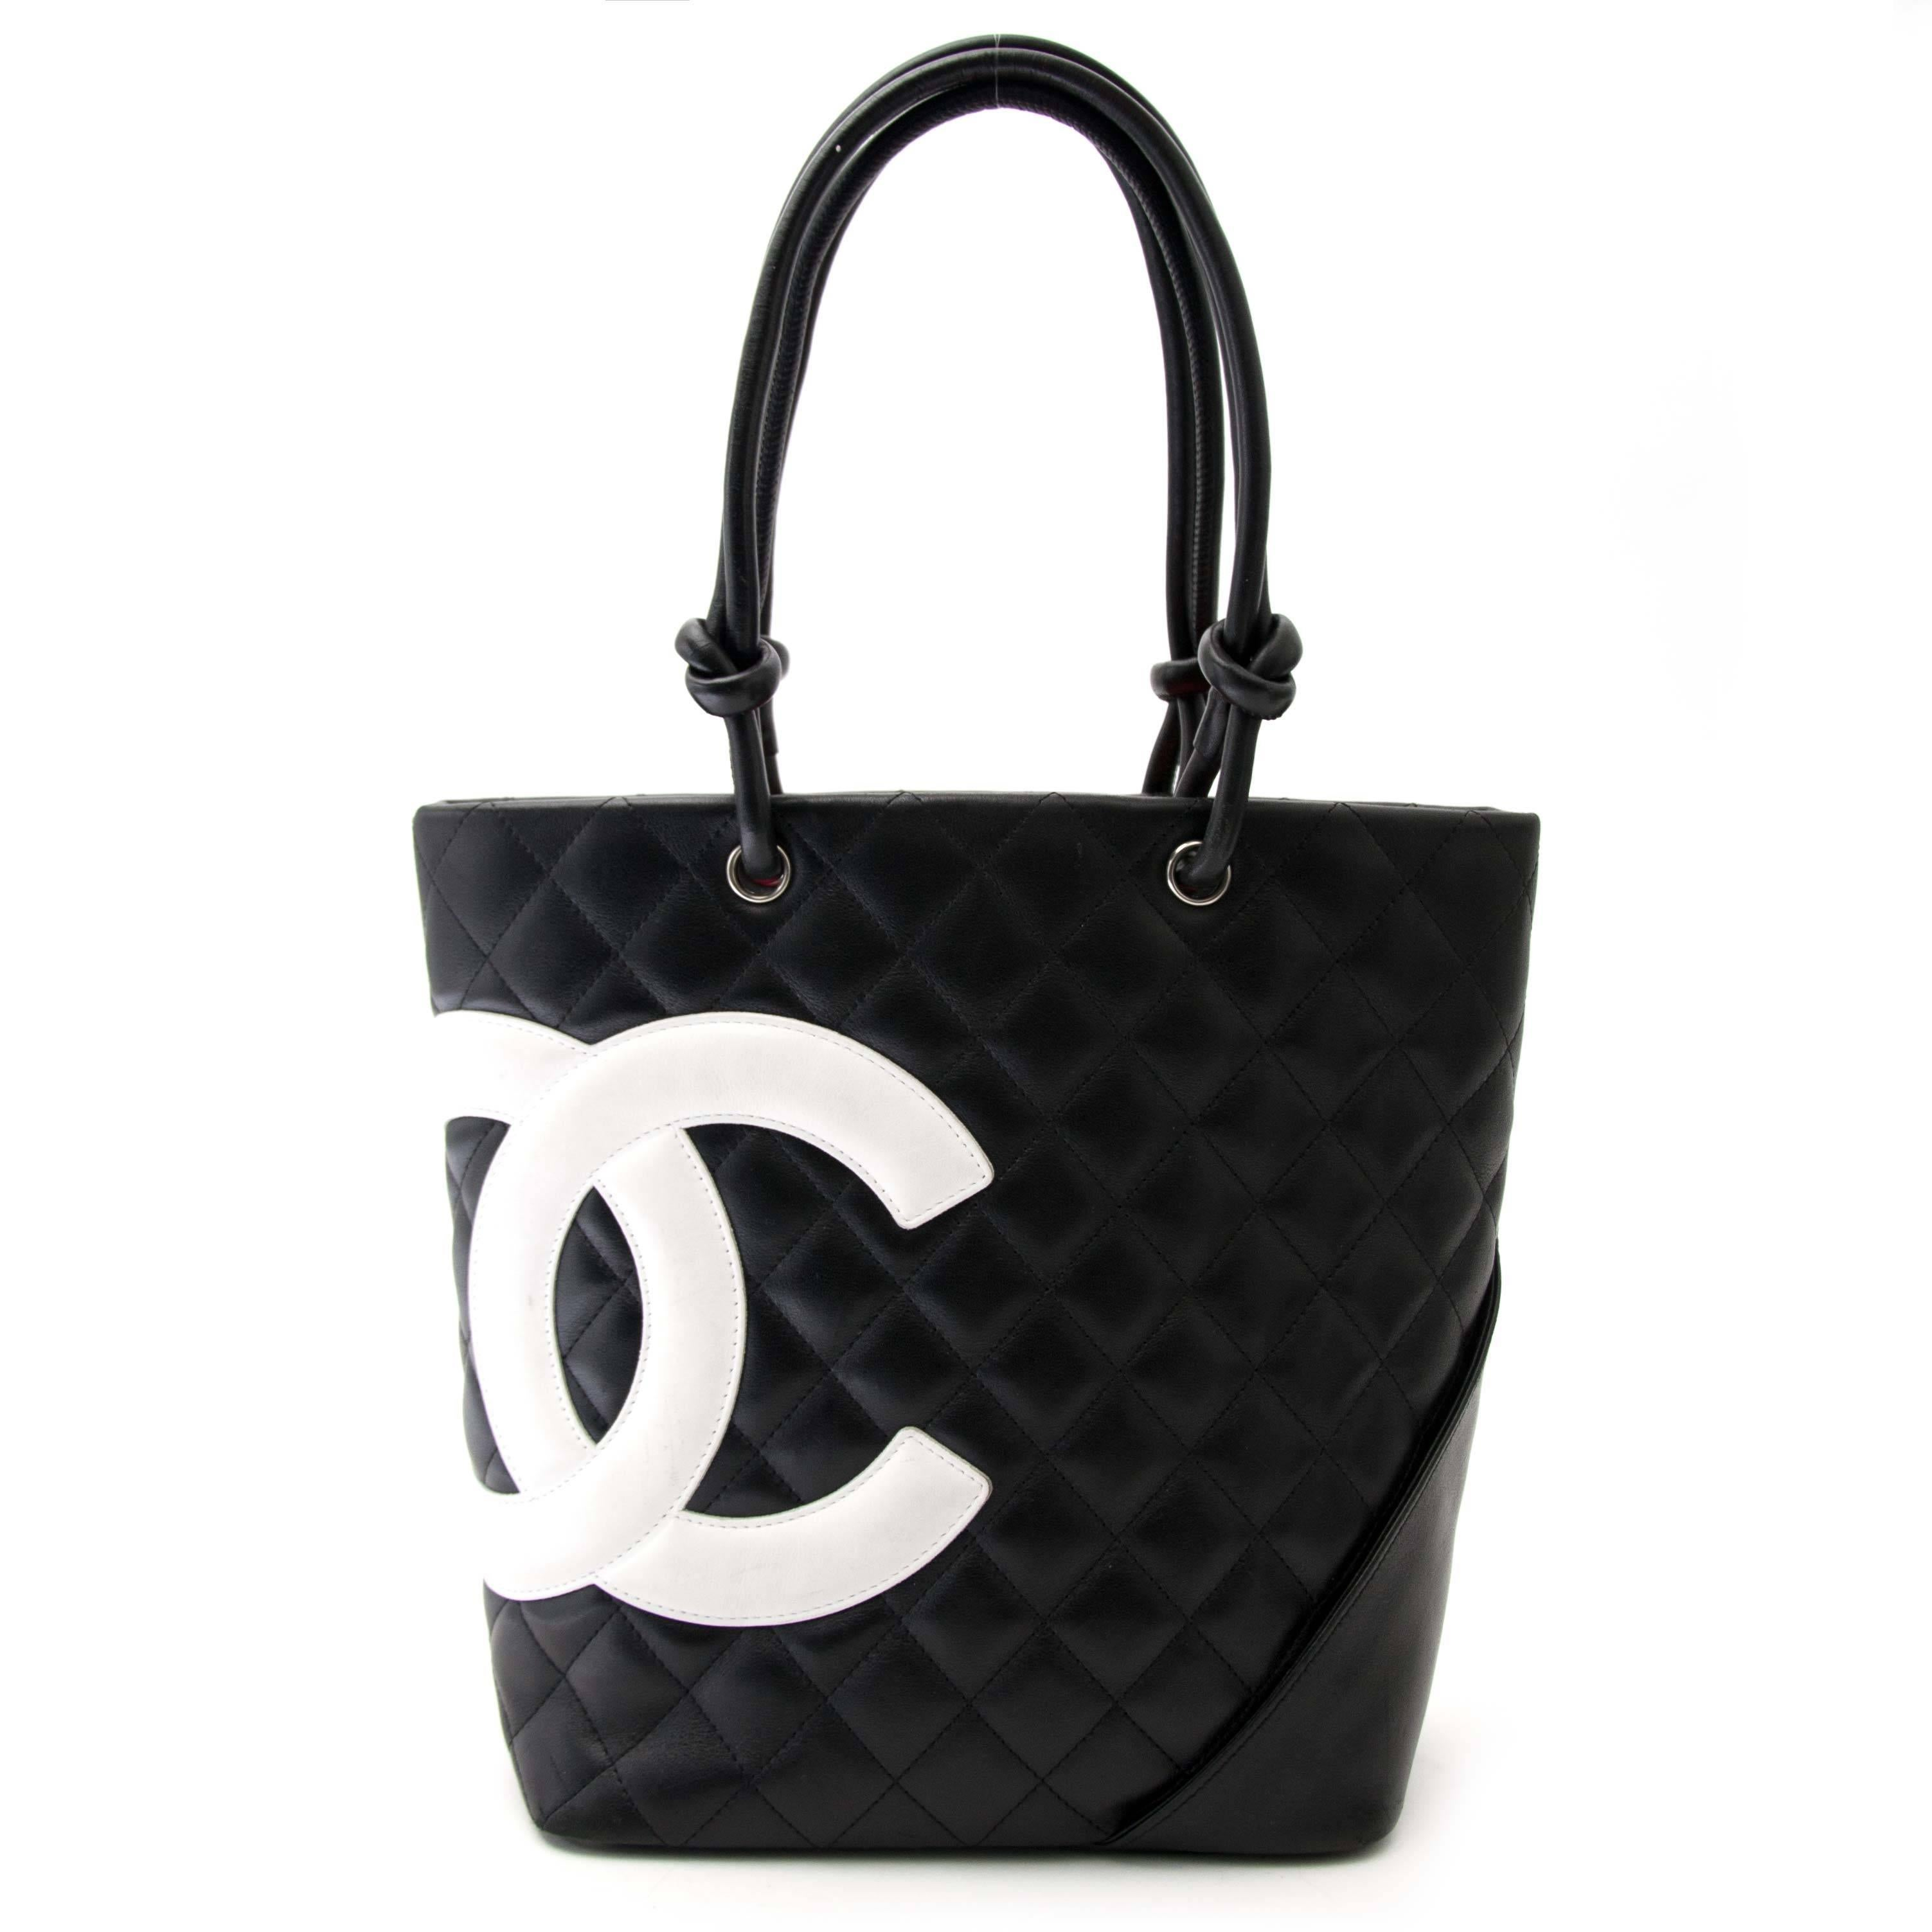 0252ee99d9b83d ... medium flap bag. Chanel Bon Quilted Black And White Small Tote At  1stdibs